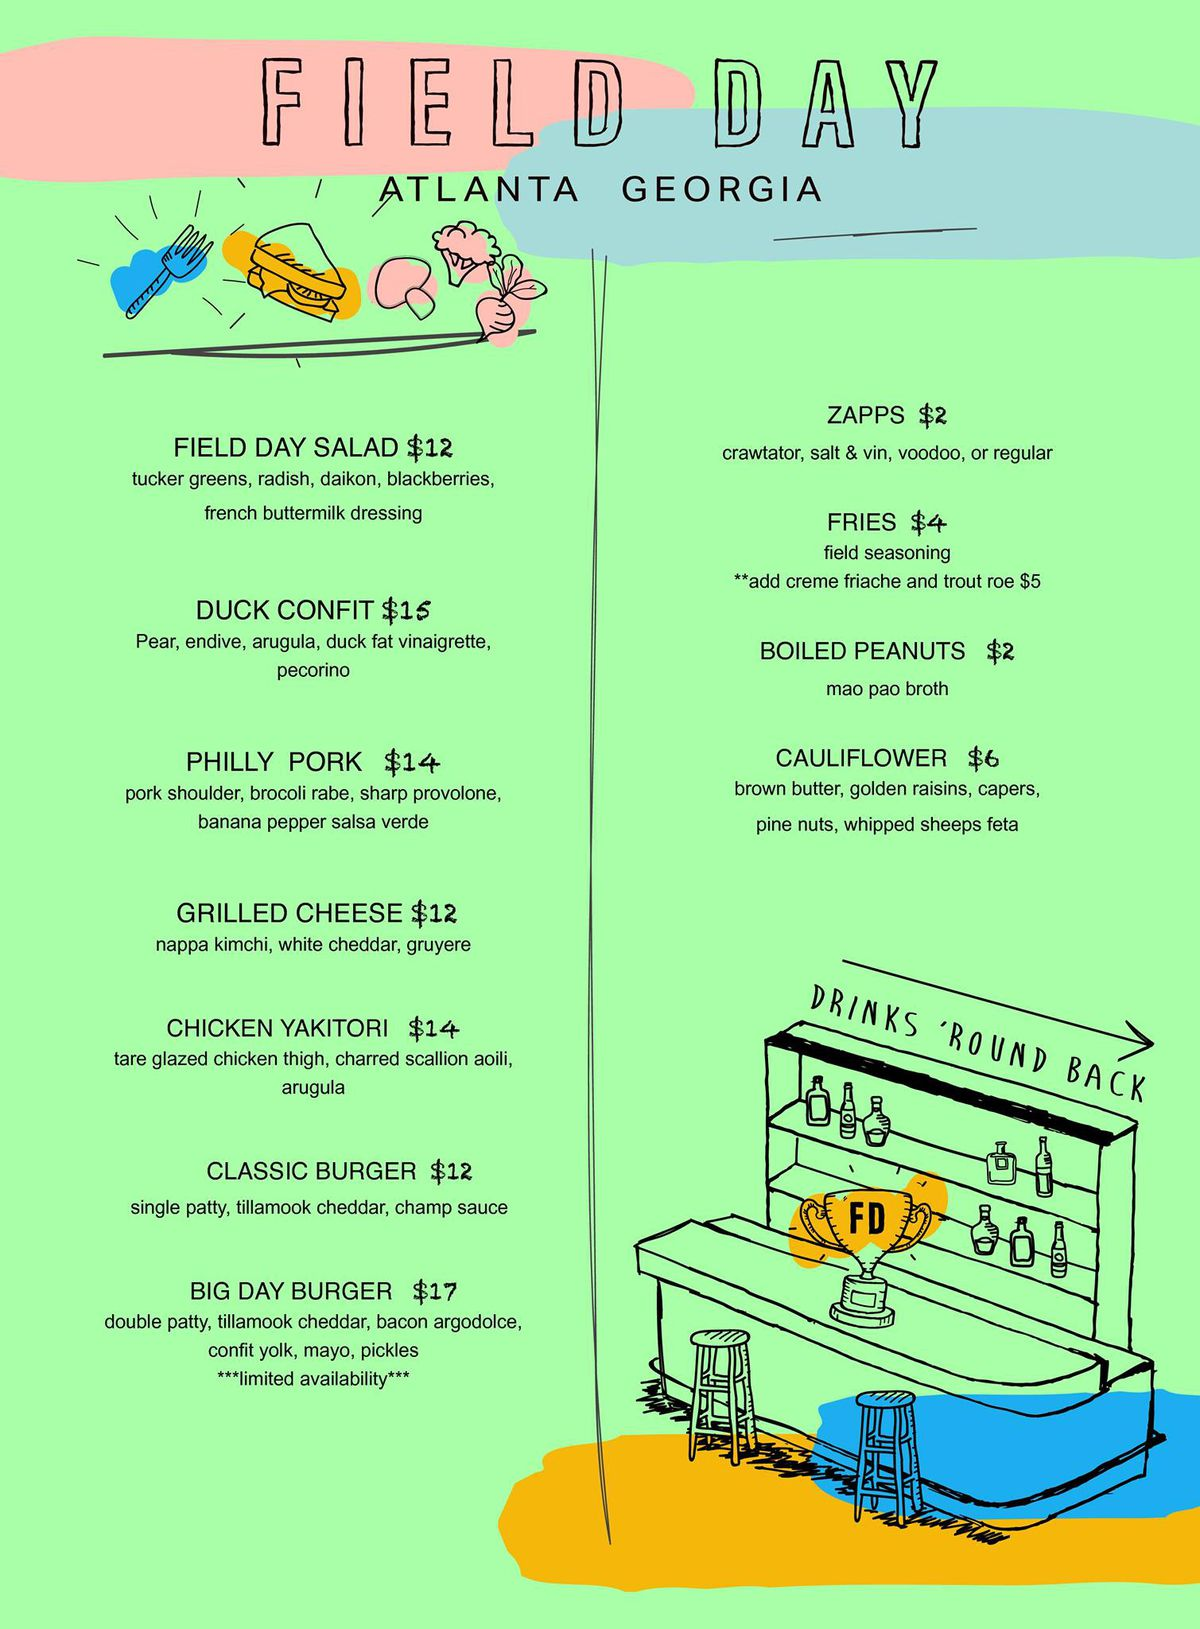 The Menu for Field Day Cafe in Old Fourth Ward, Atlanta